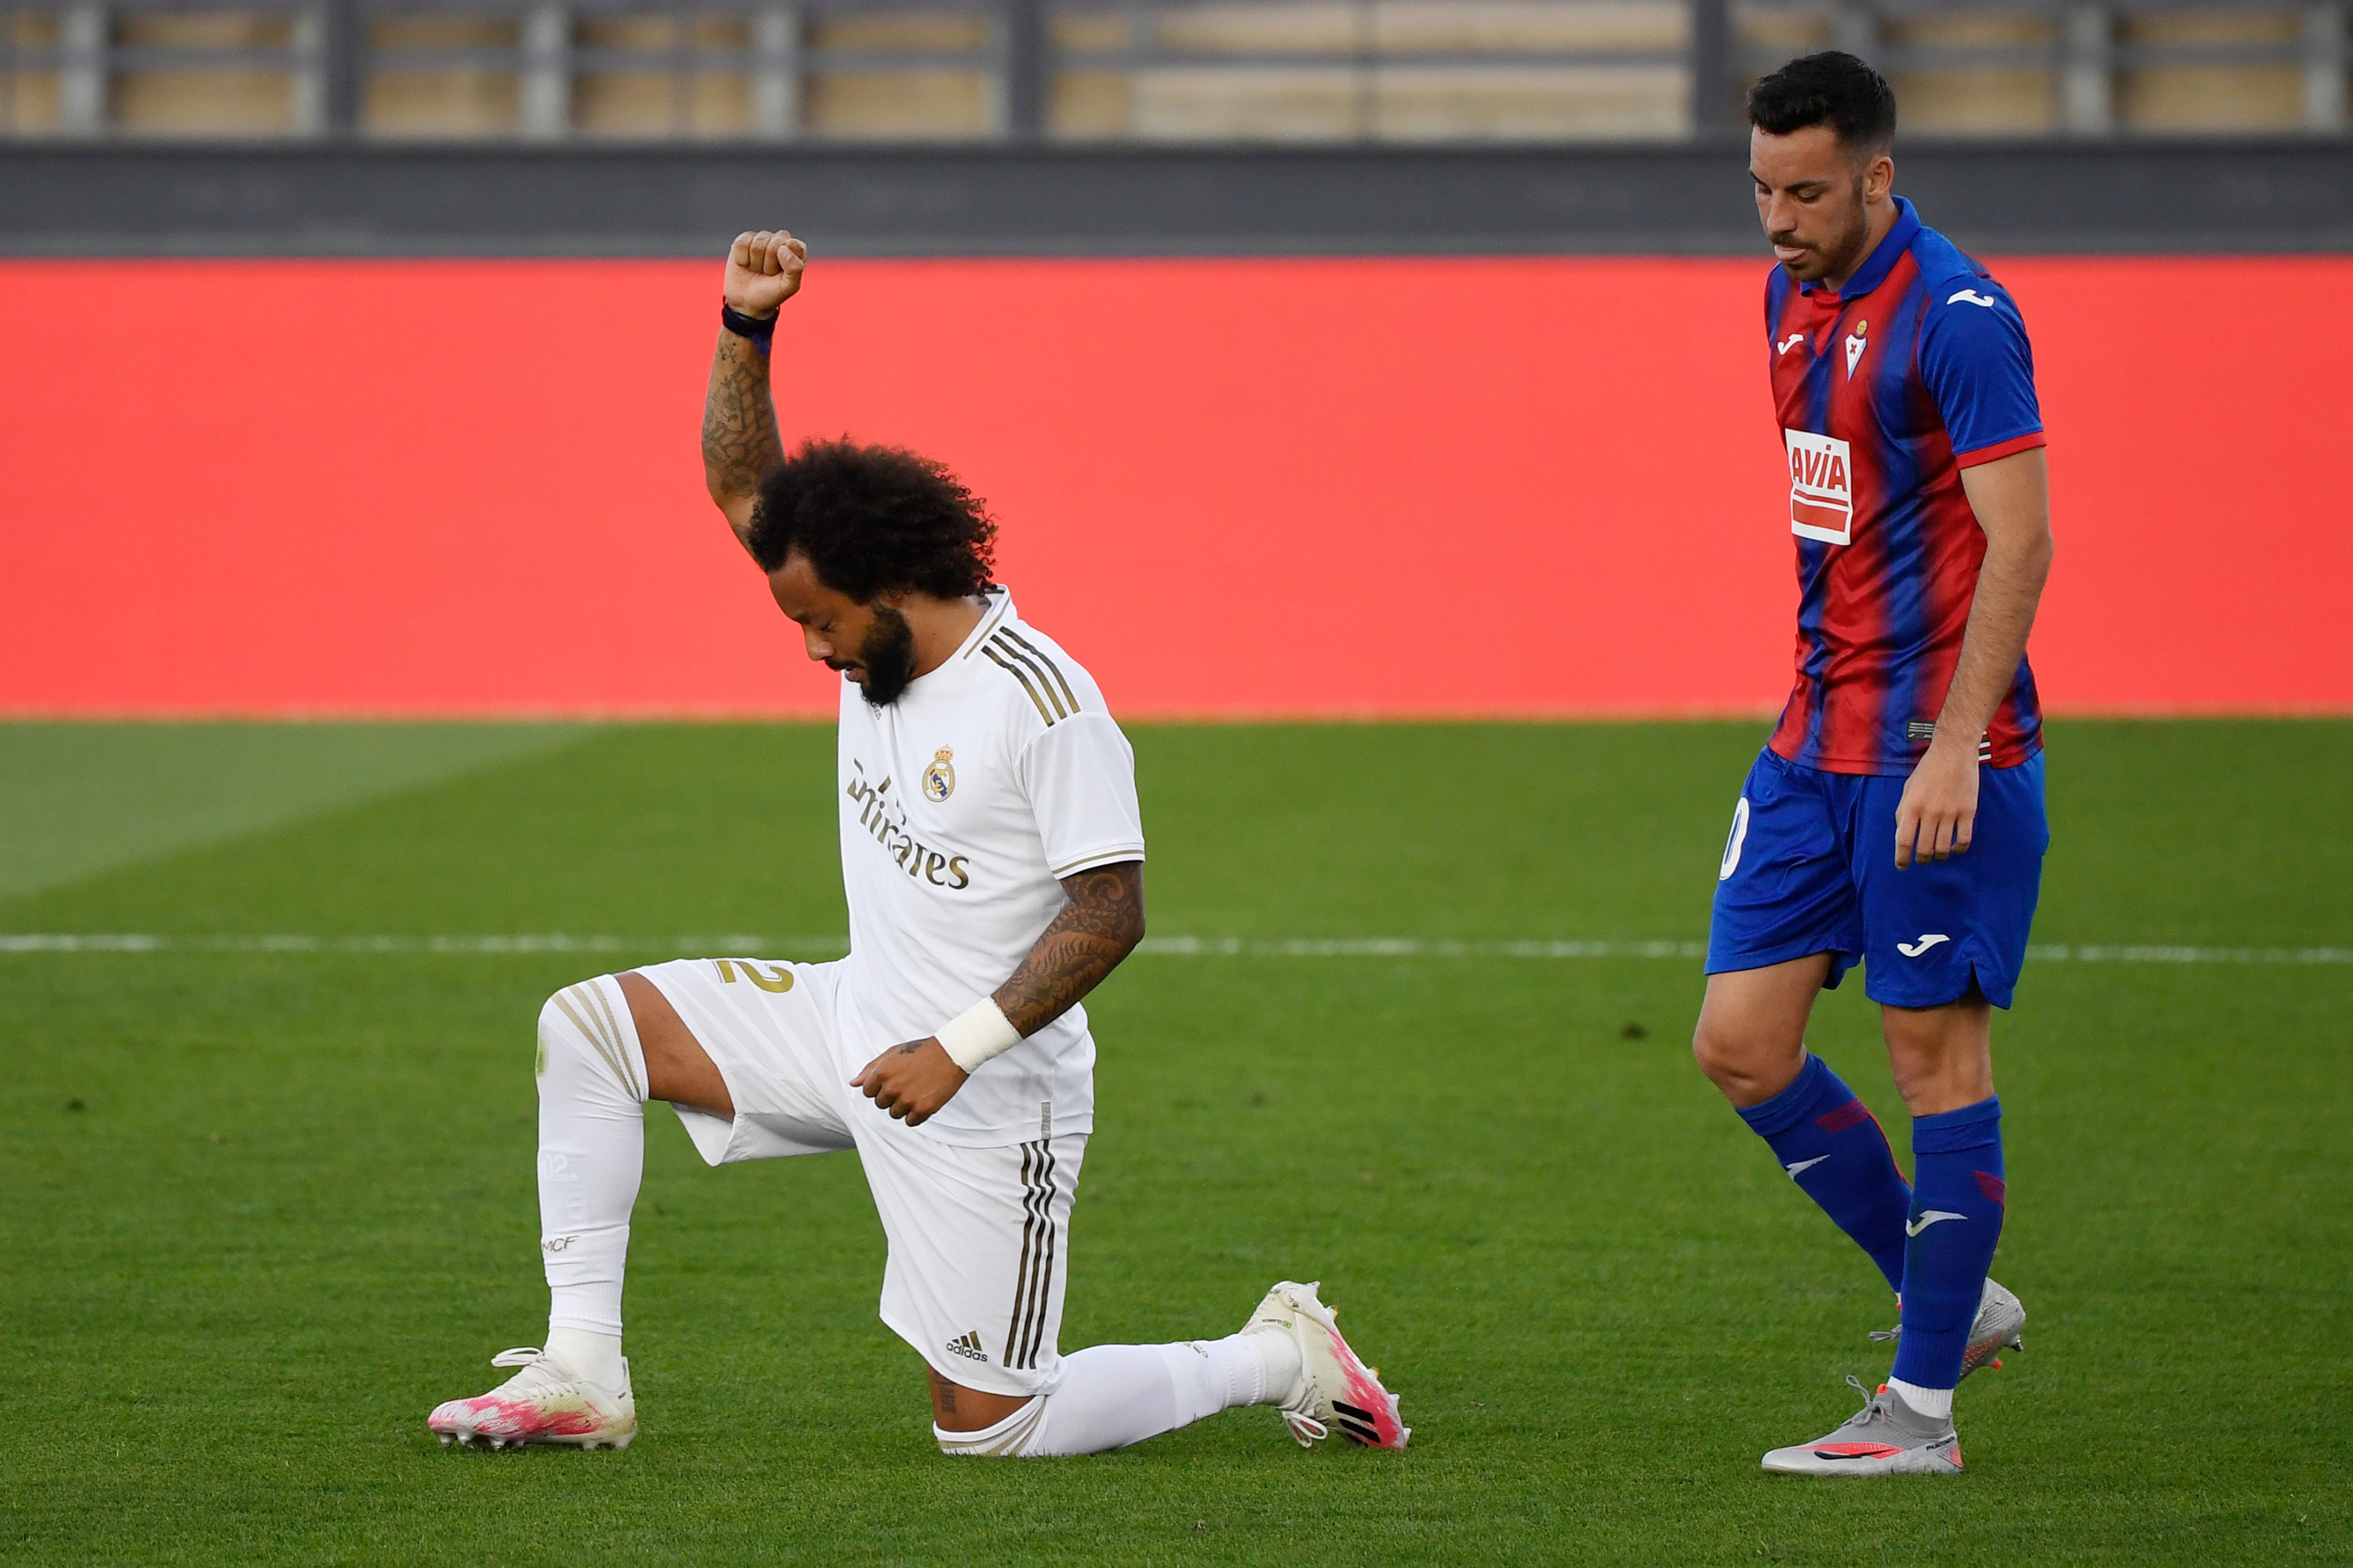 Real Madrid's Marcelo kneels after scoring a goal in the match against Eibar on June 14 in Madrid, Spain.